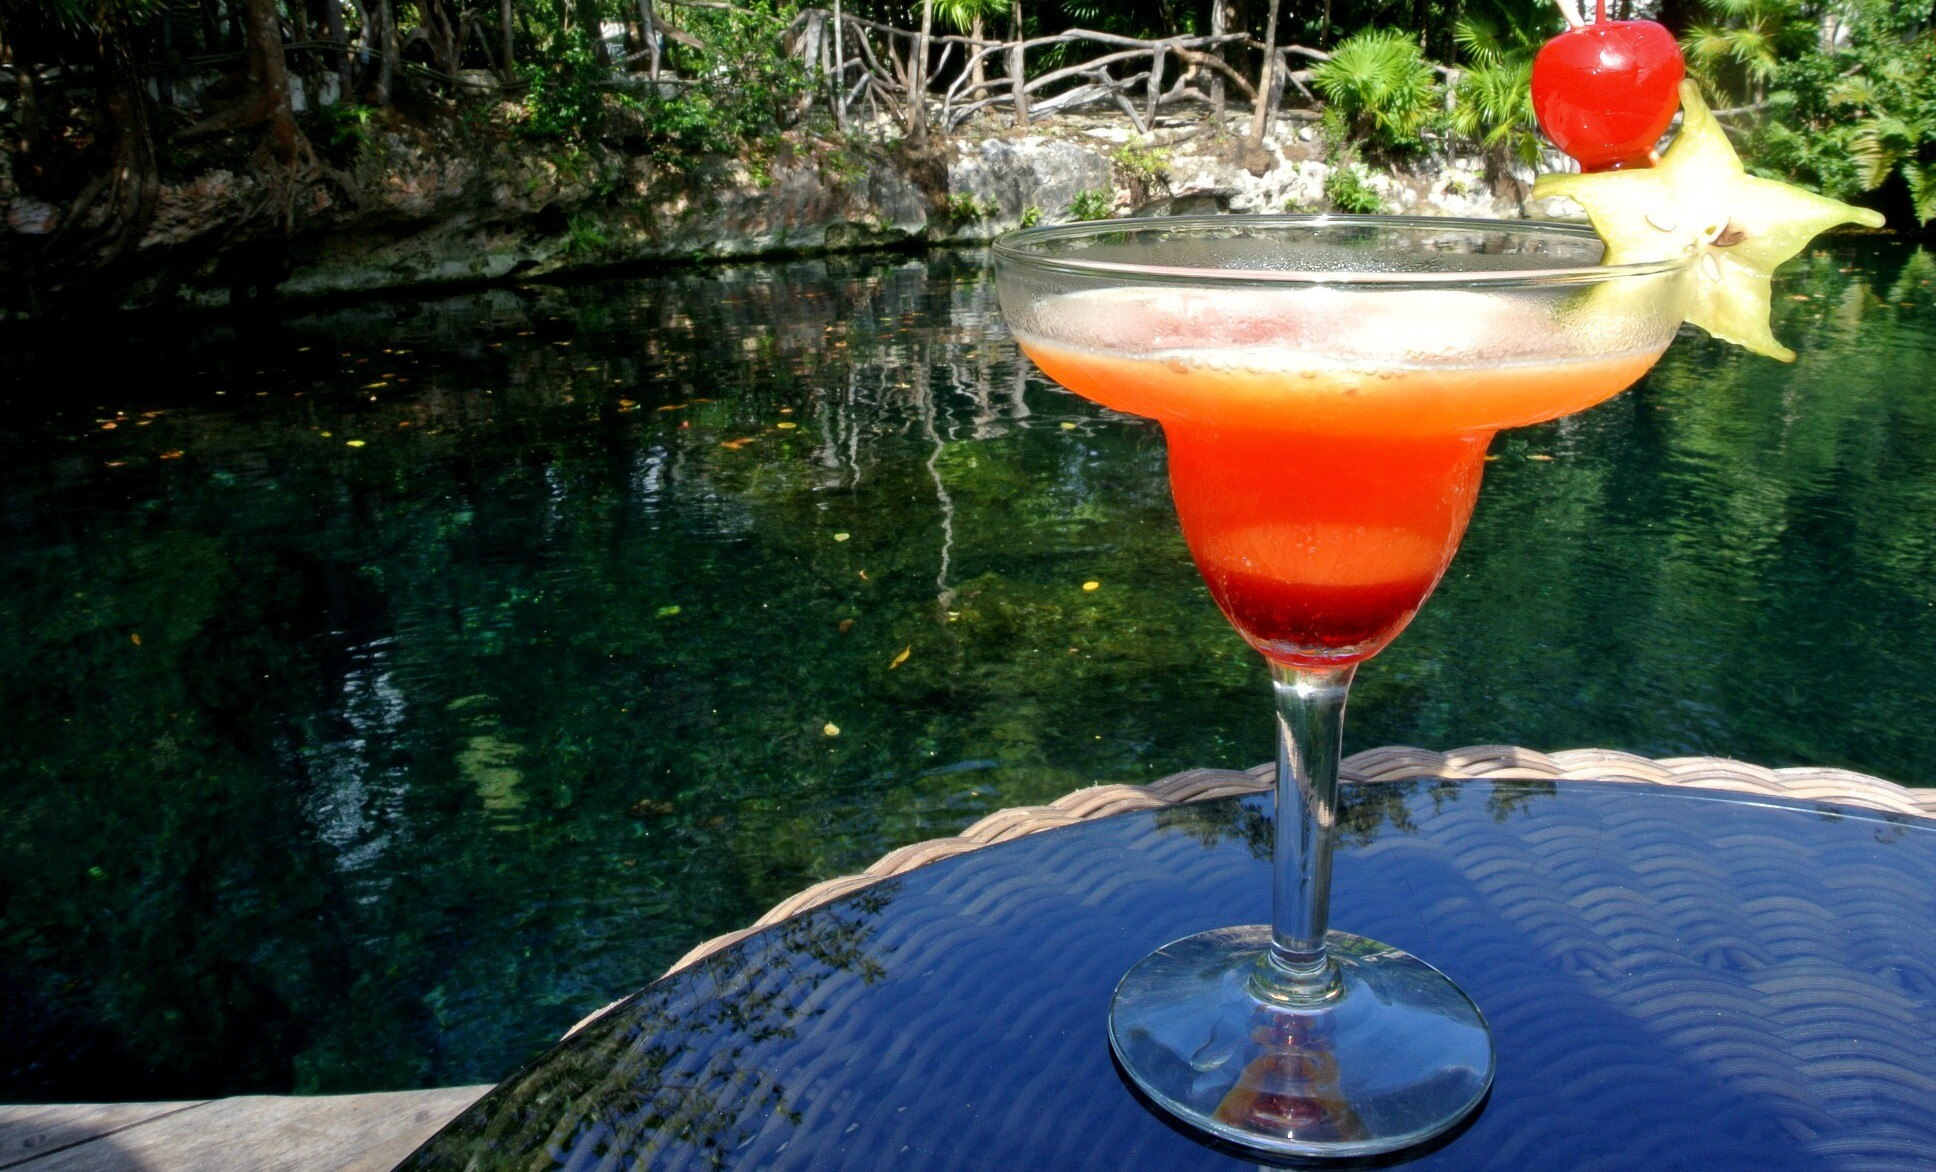 Sandos Riviera Maya resort cocktail